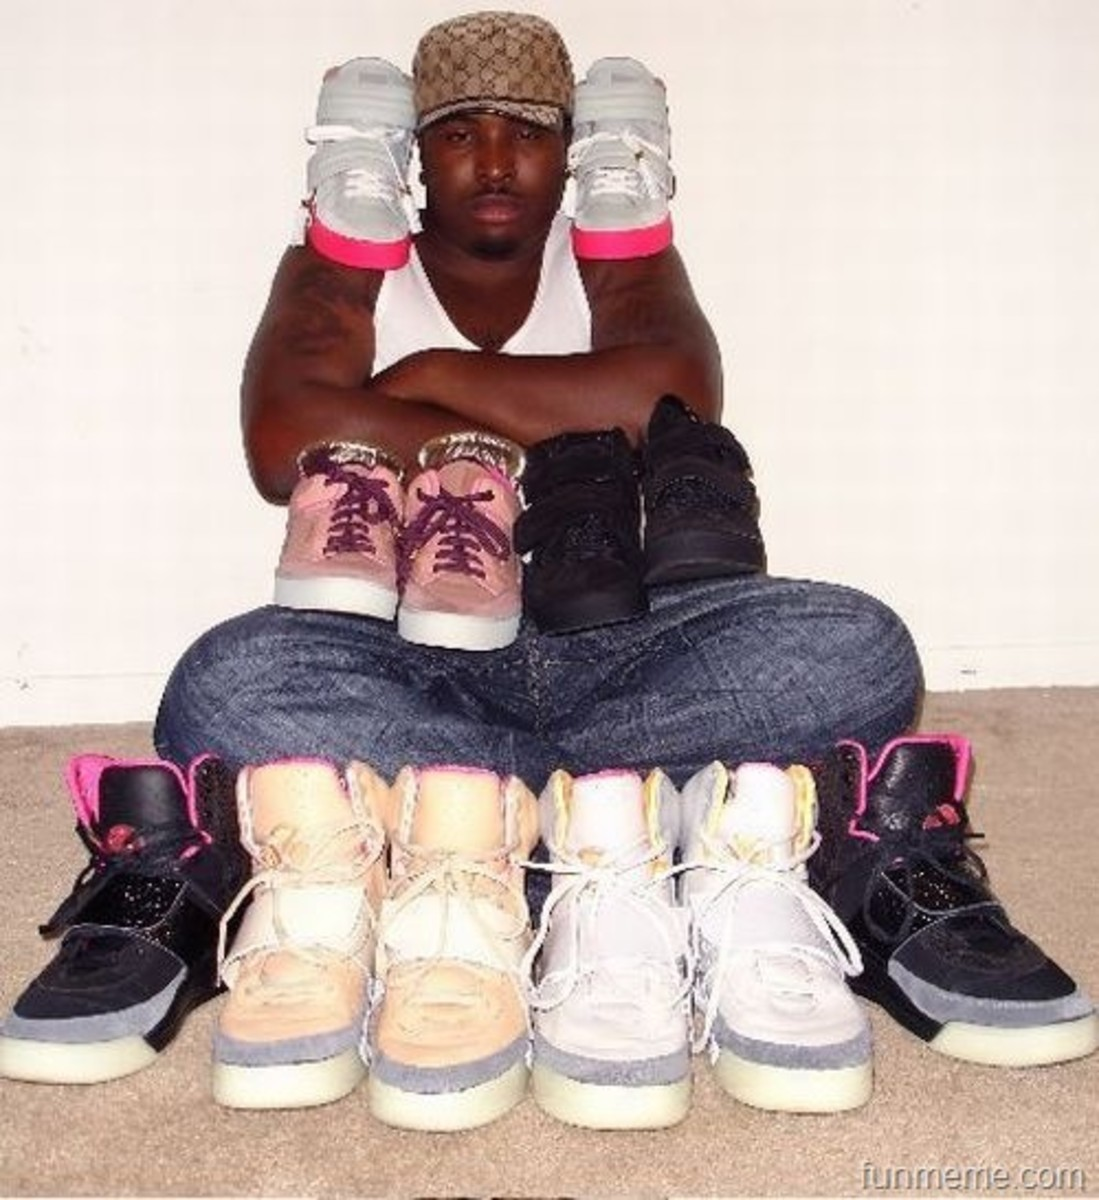 every thug needs kicks, even a pair of pink nikes